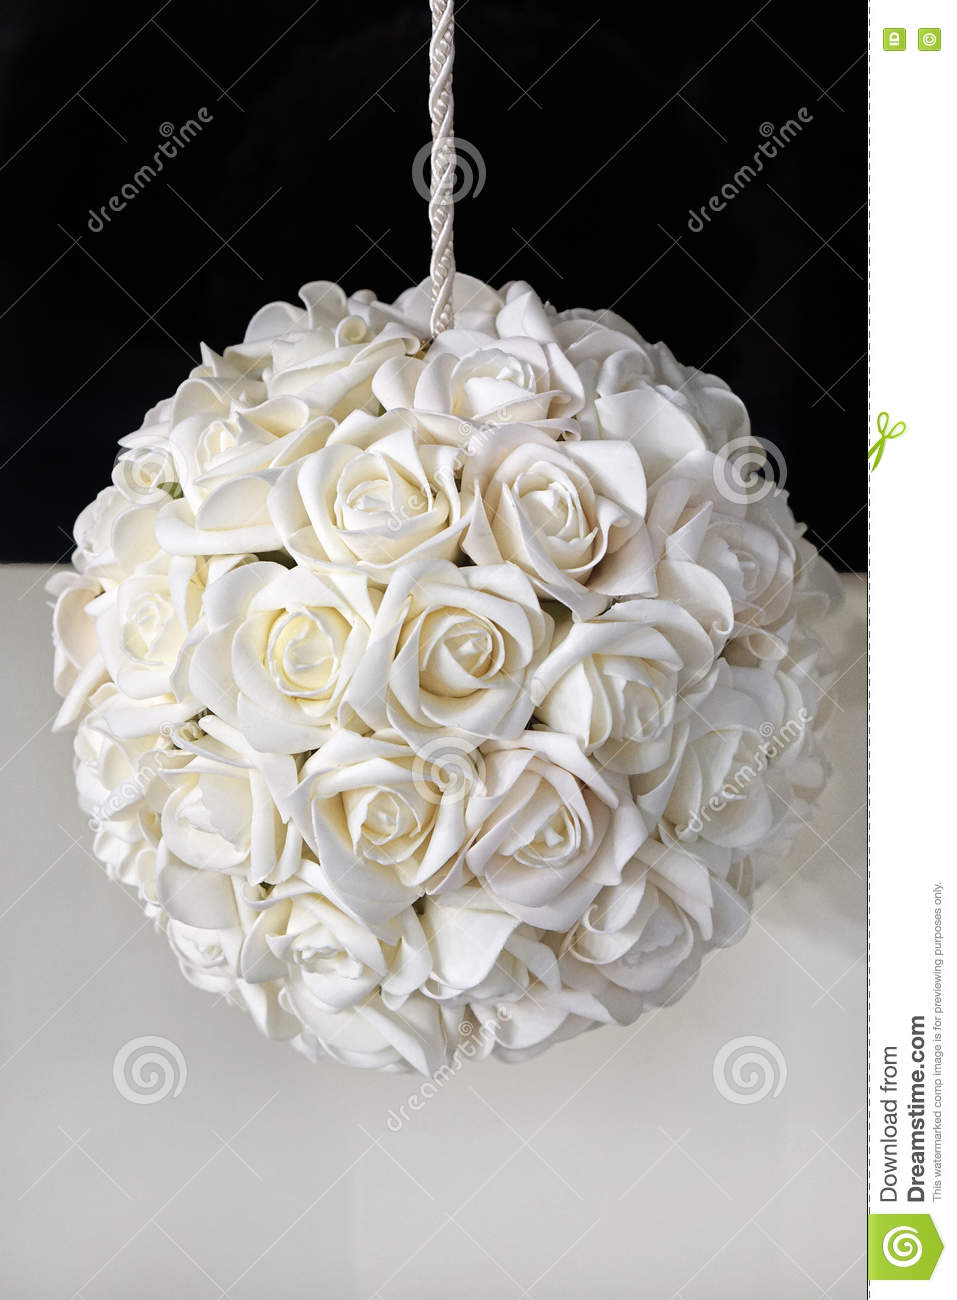 White Rose Ball Stock Image Image Of Decoration Flower 70712843